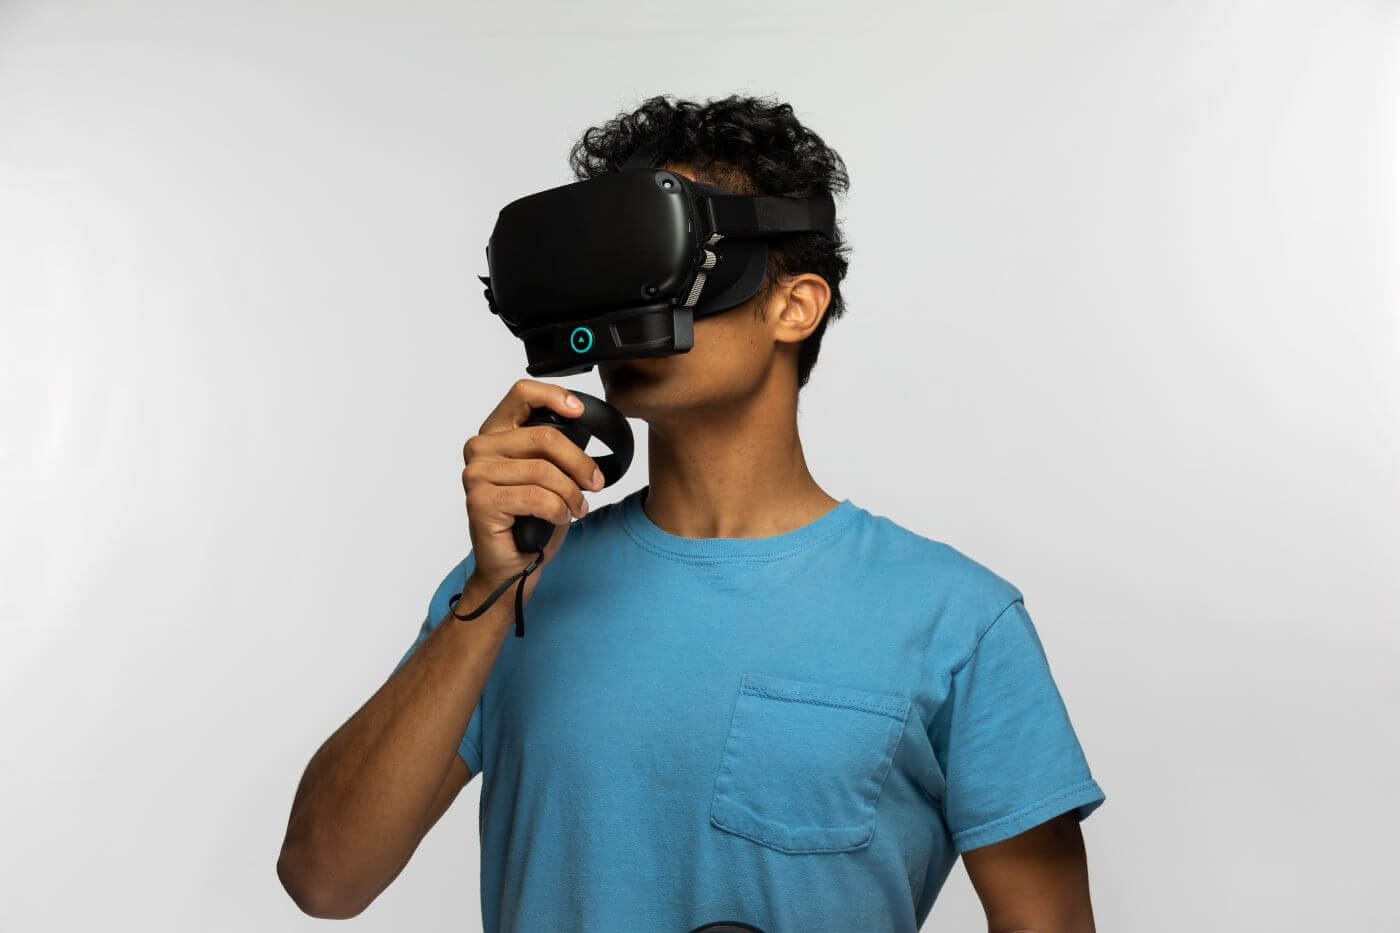 OVR Technology Creates First-of-Its-Kind Virtual Reality Experiences With Scents | ARPost